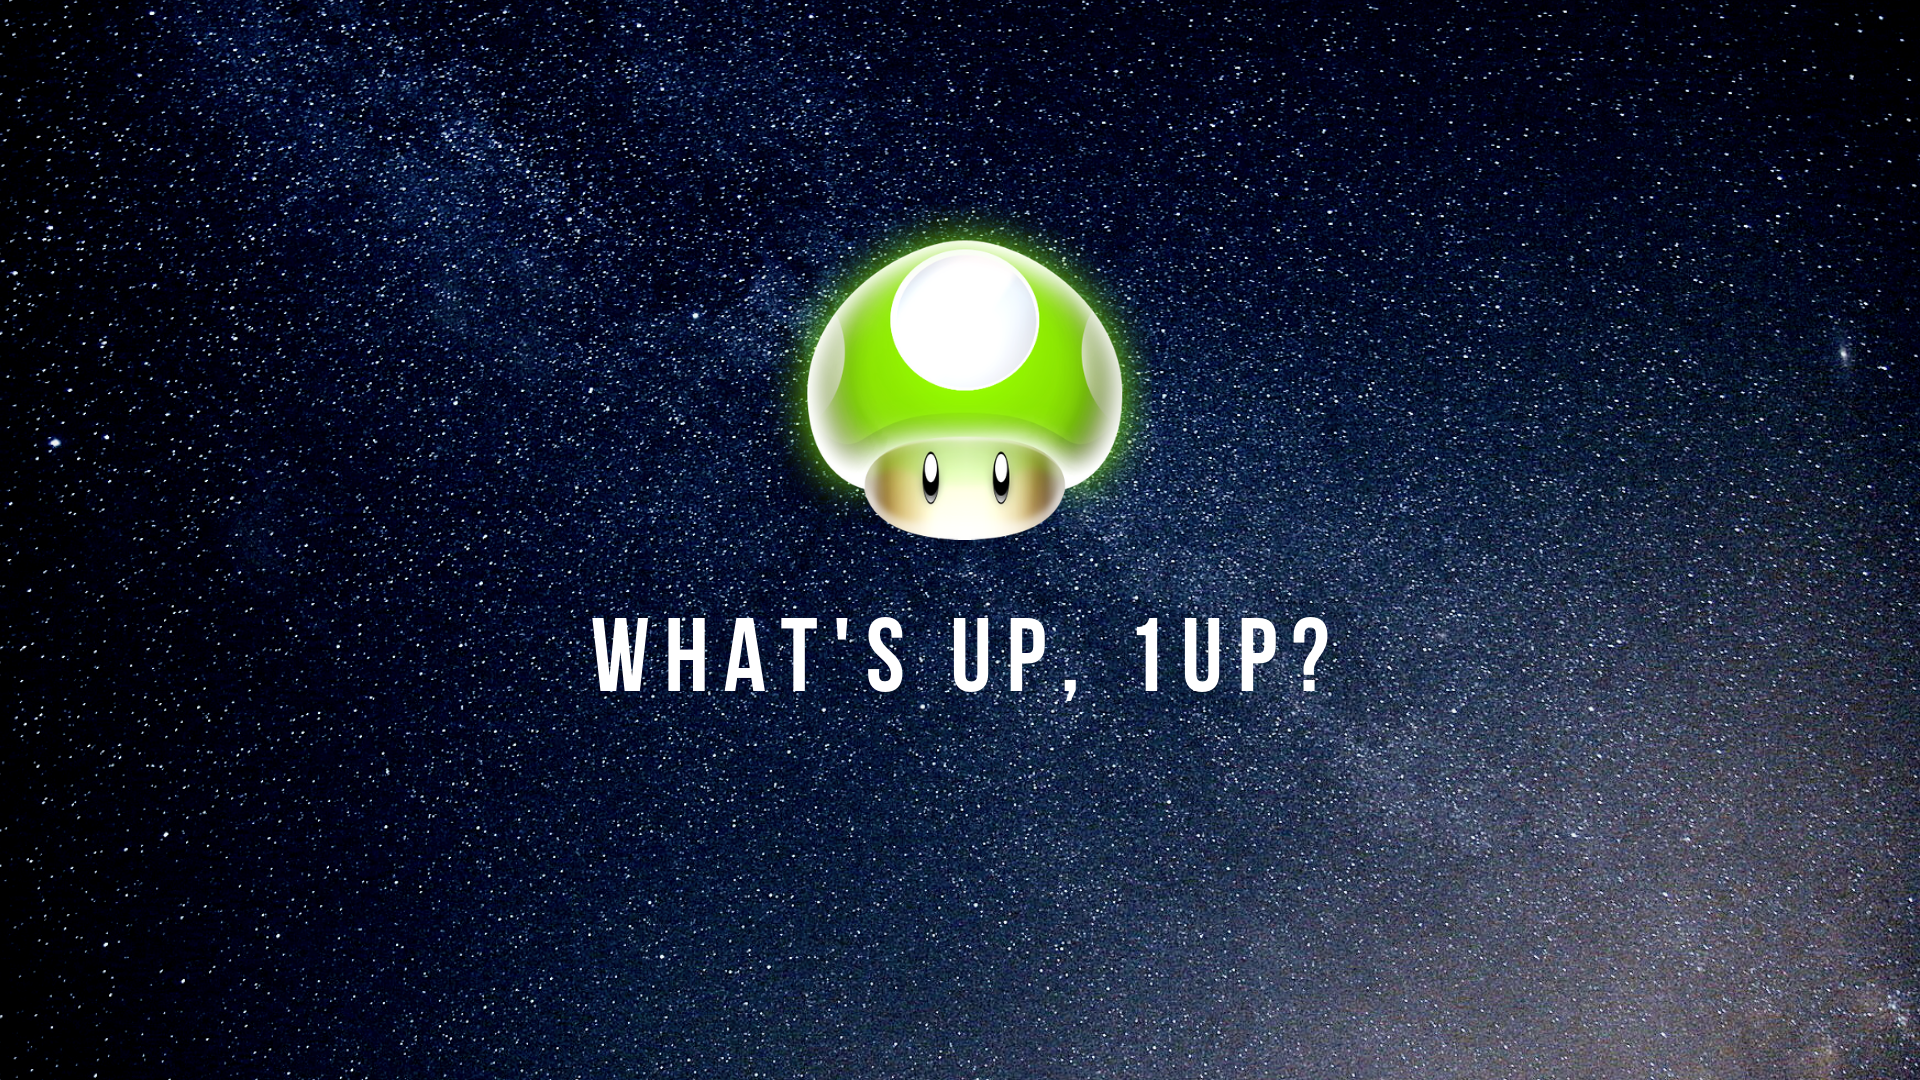 What's up, 1UP?